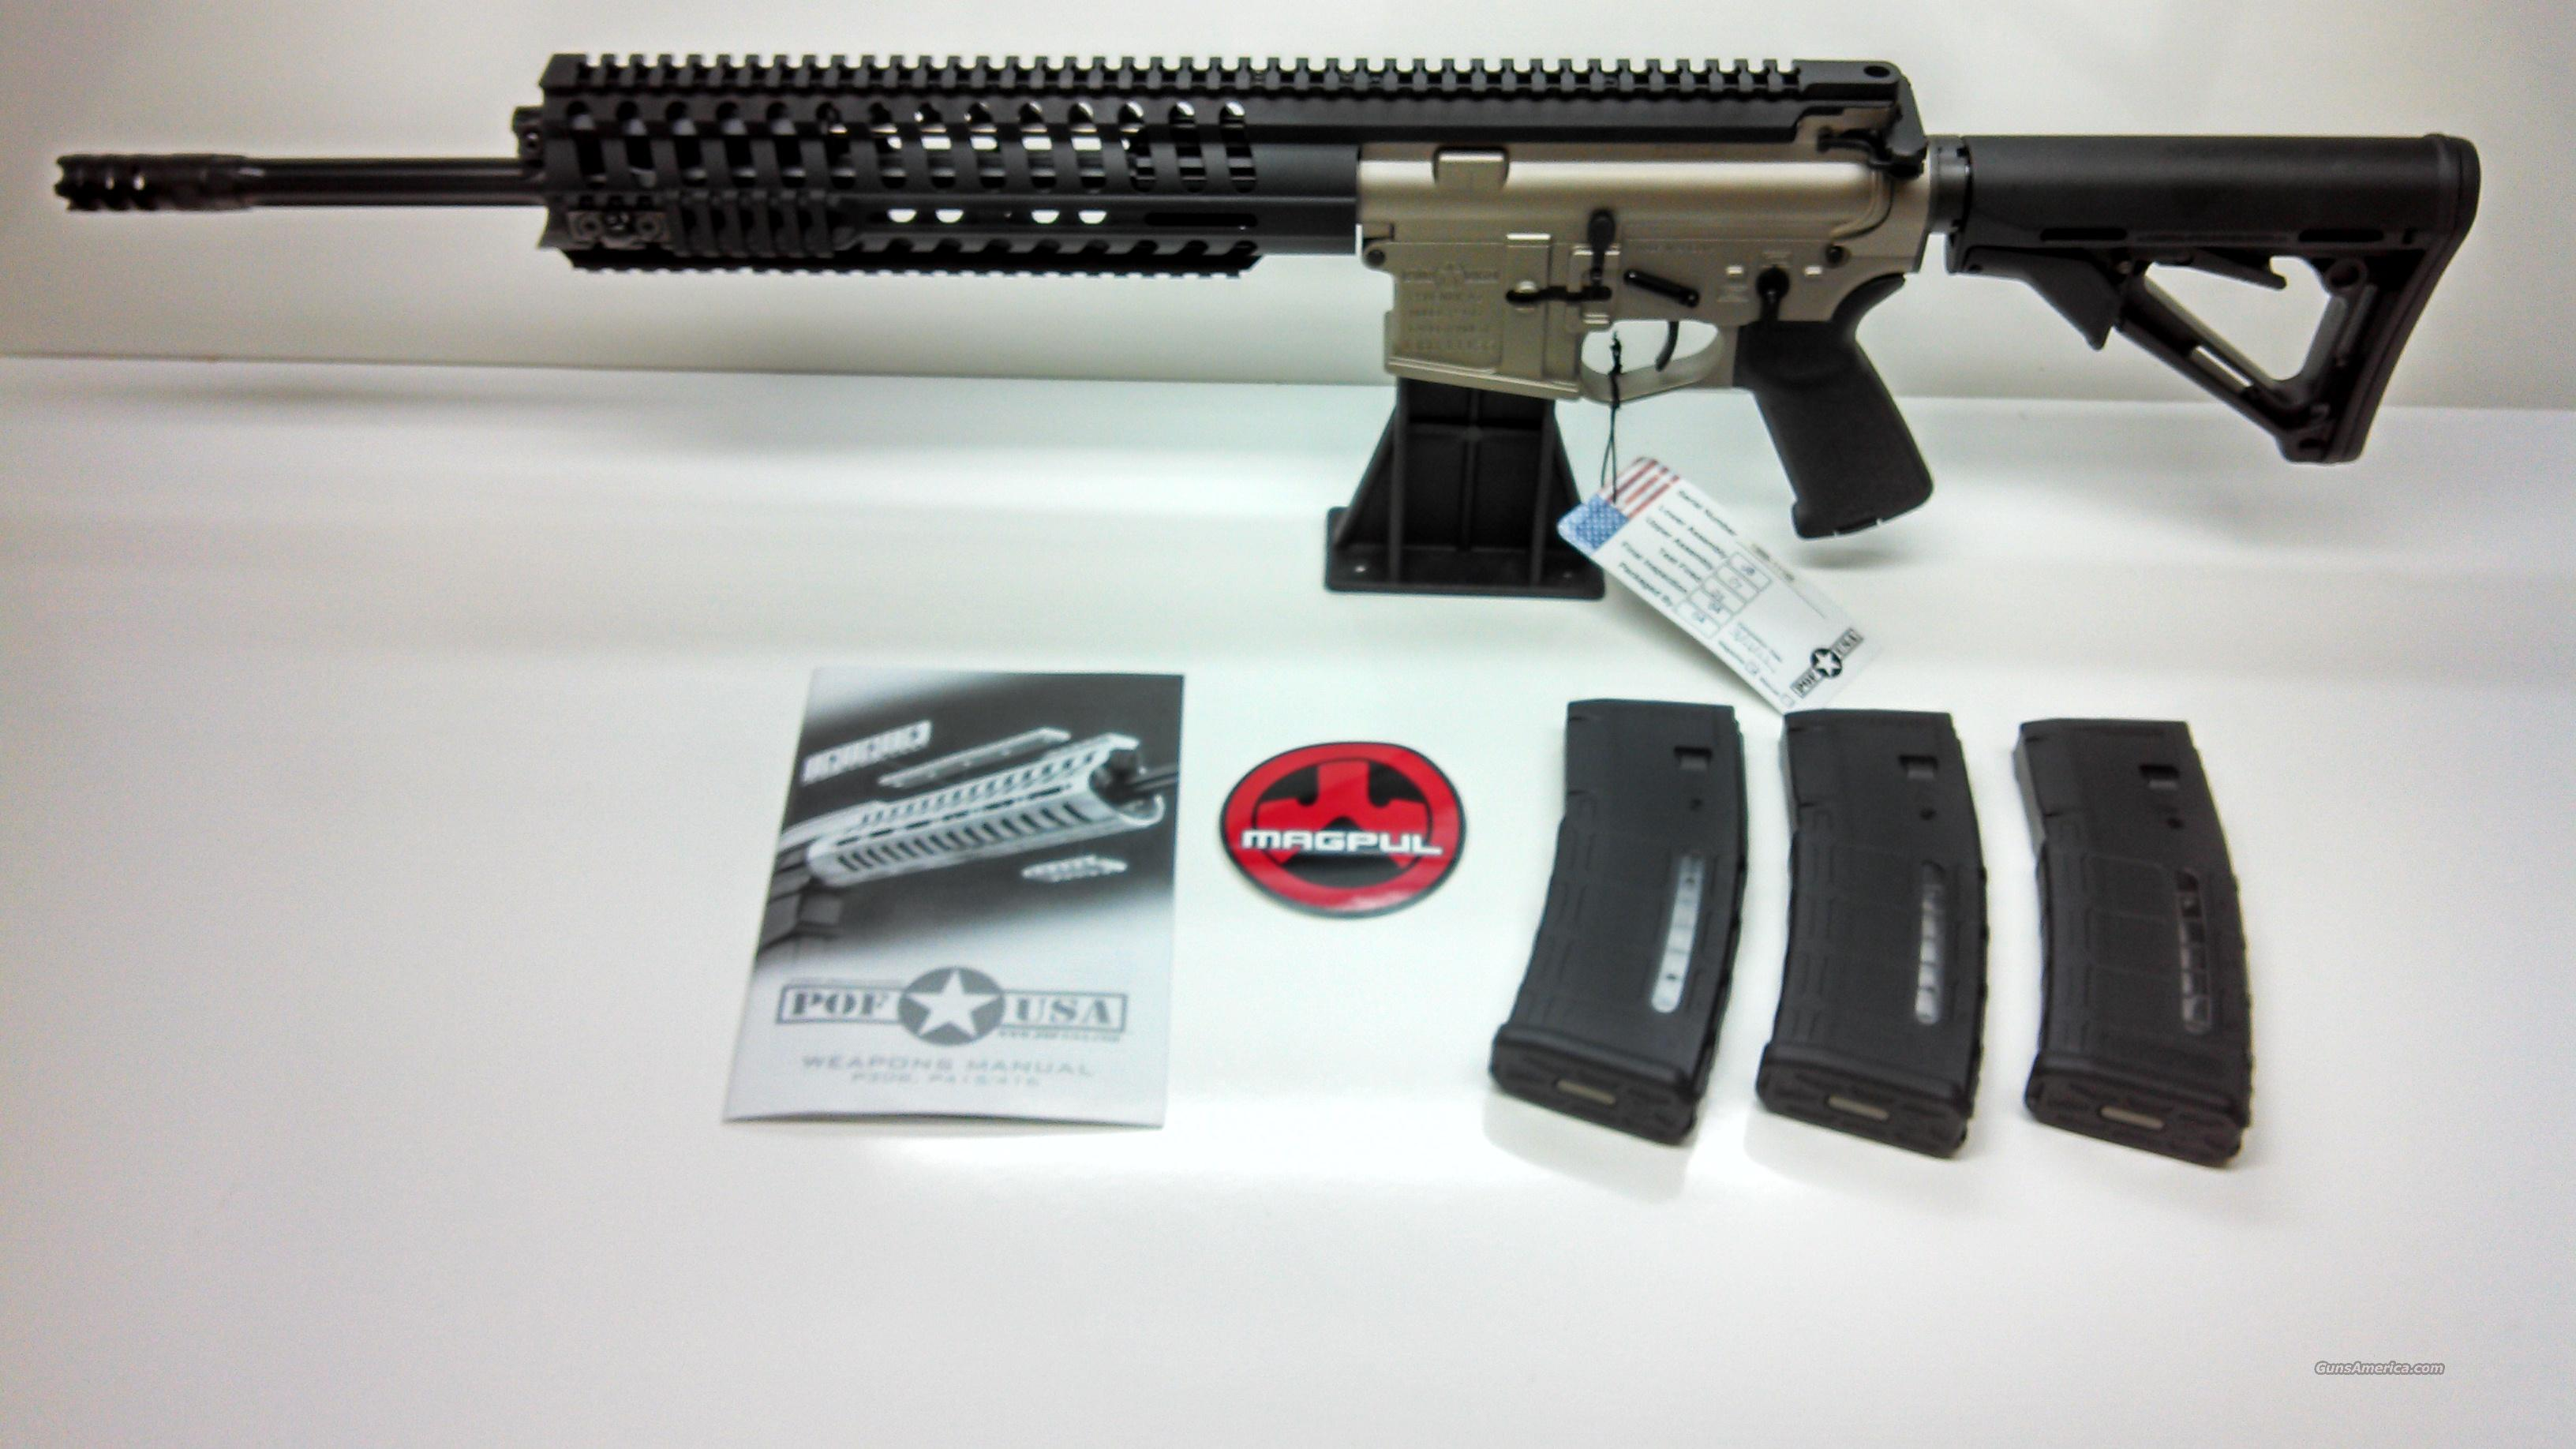 "POF-USA P415 SERIES T RAIL 16.5"" NP3 - PMAG MAGAZINES INCLUDED  Guns > Rifles > Tactical Rifles Misc."